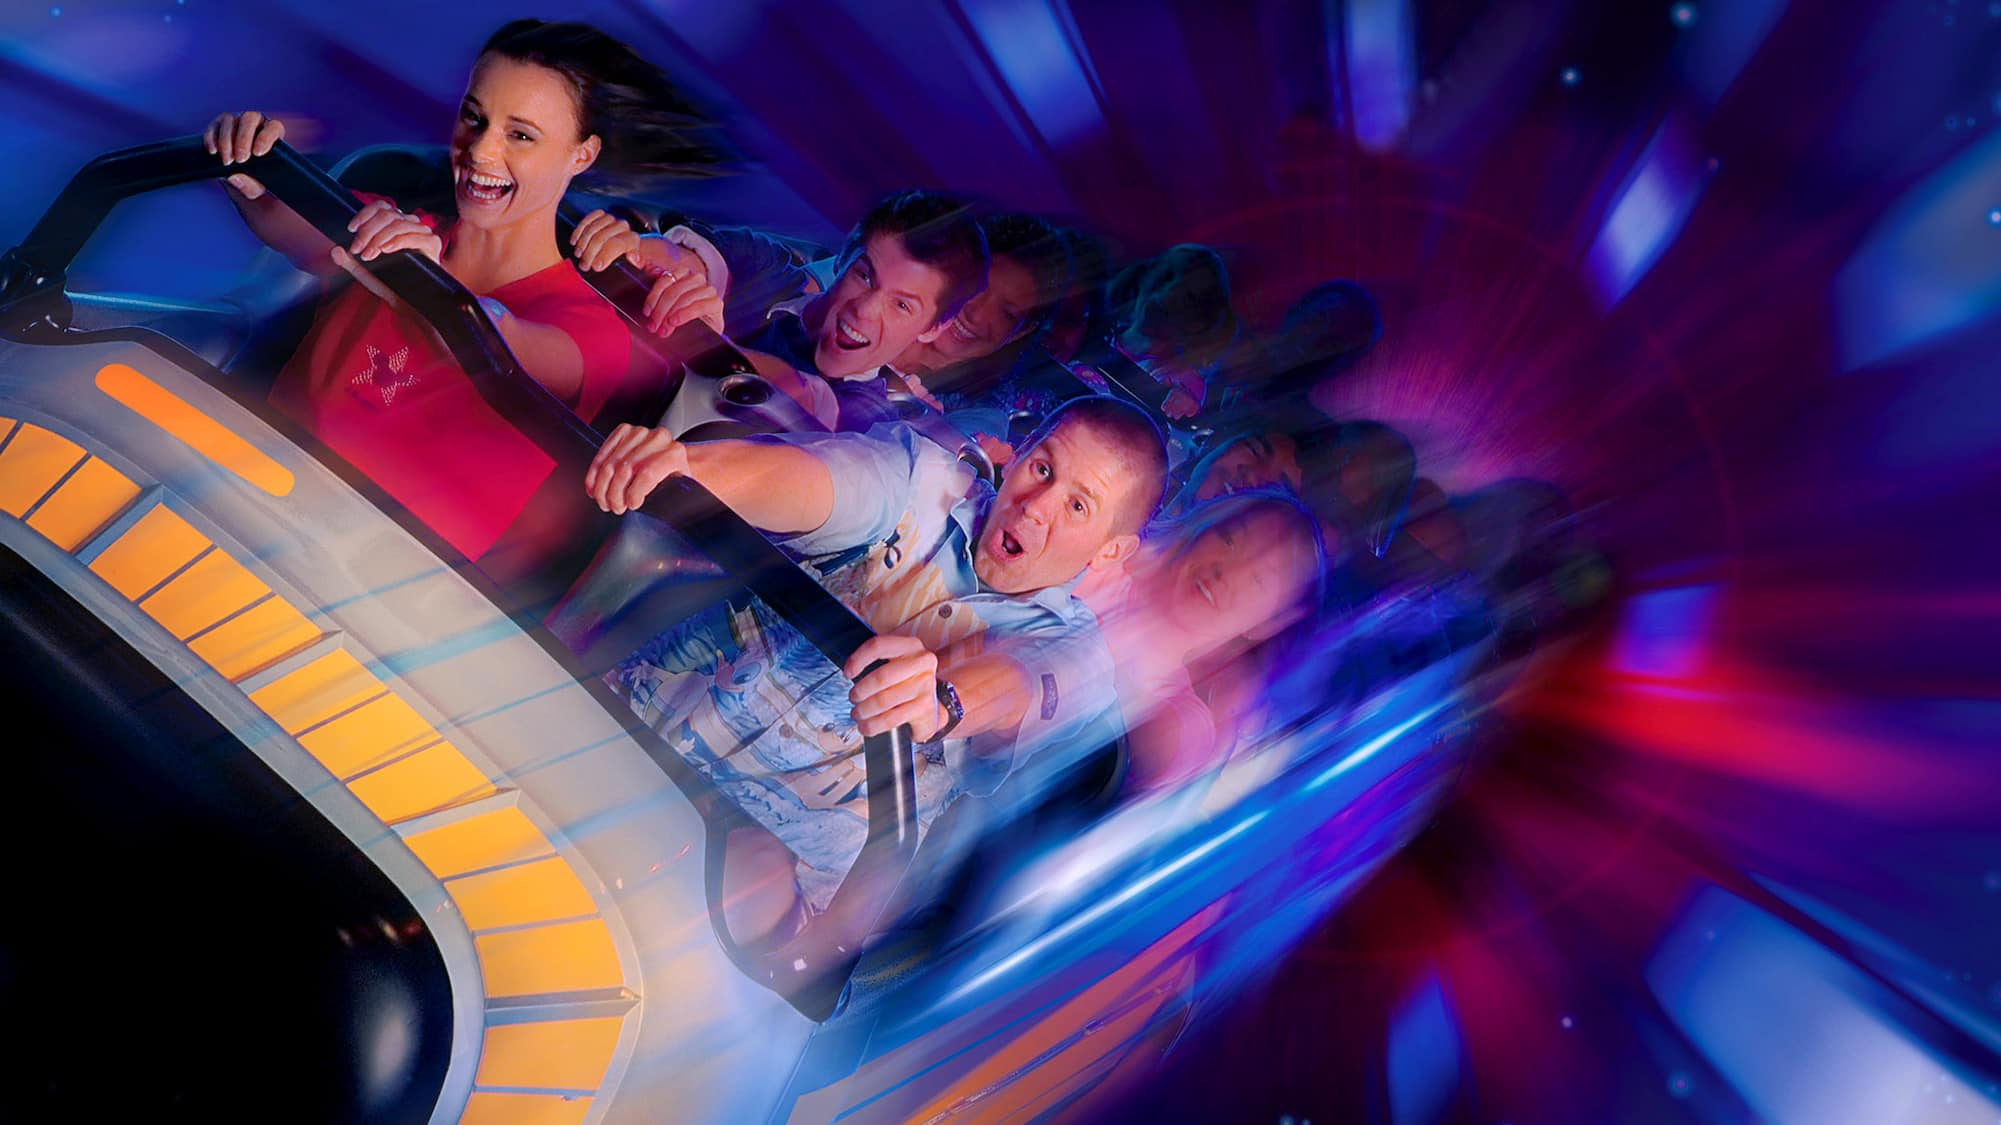 Space Mountain attraction is a Disneyland must do